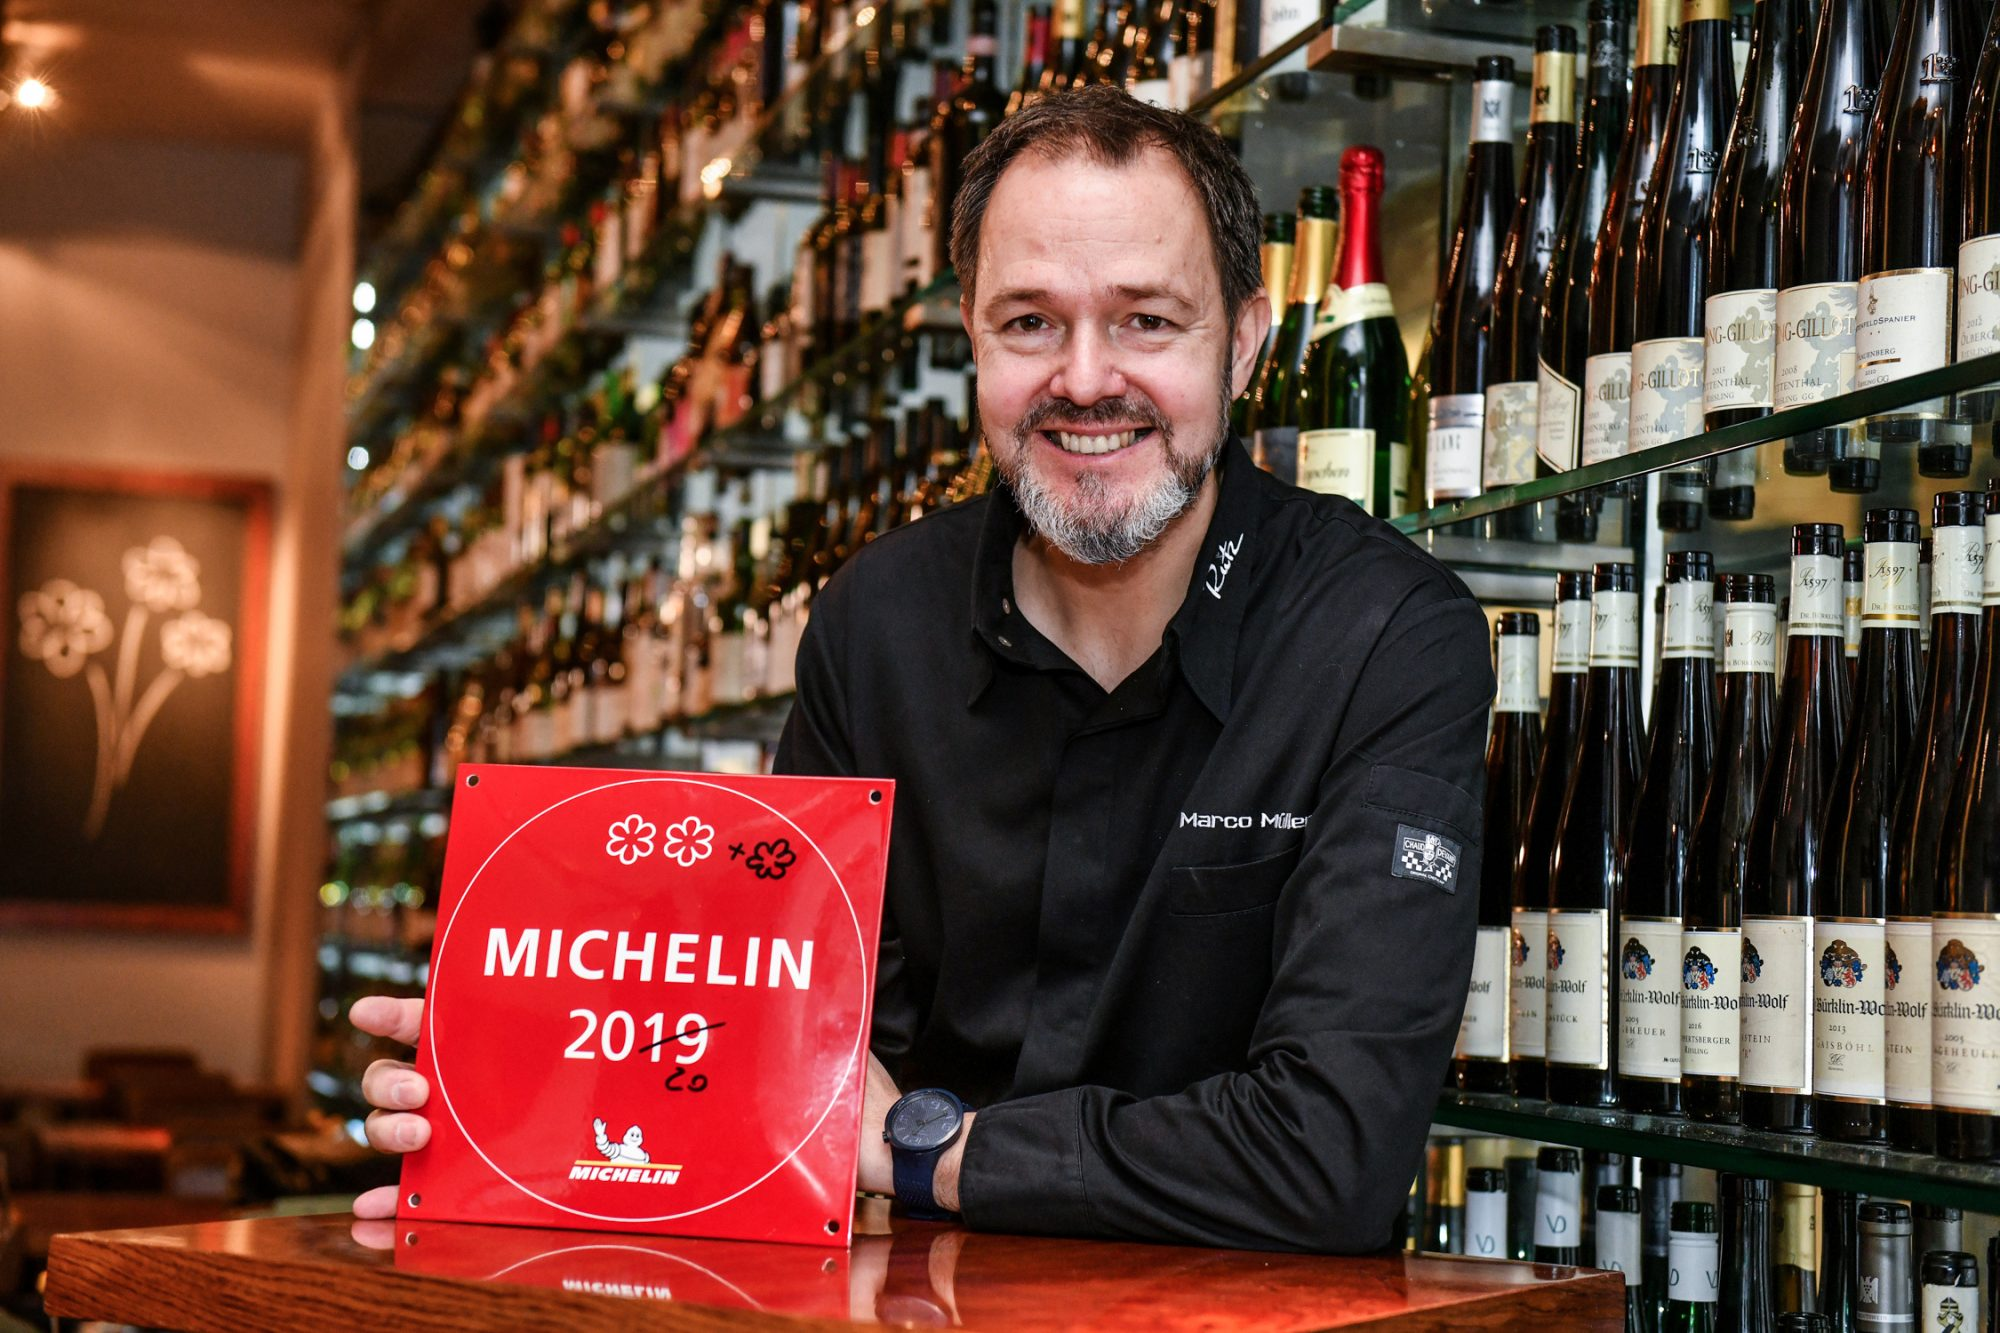 Michelin Guide Germany Rutz Marco Müller